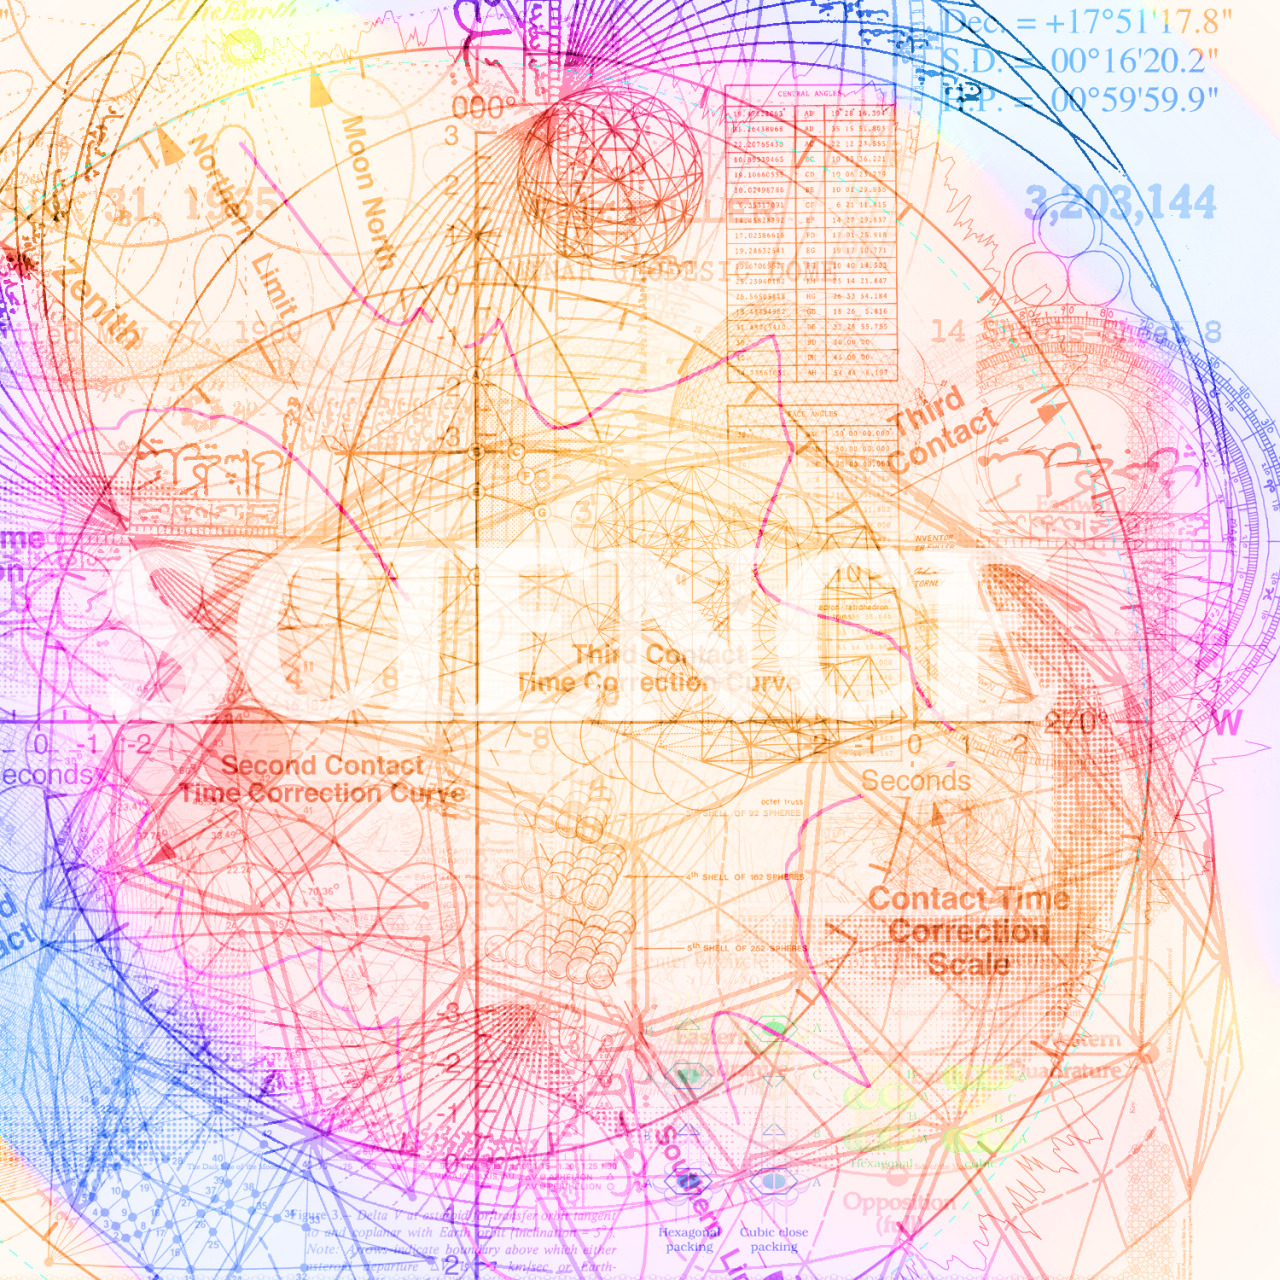 science math art abstract innovation human race society earth space mathematics universe physics innovate people minds